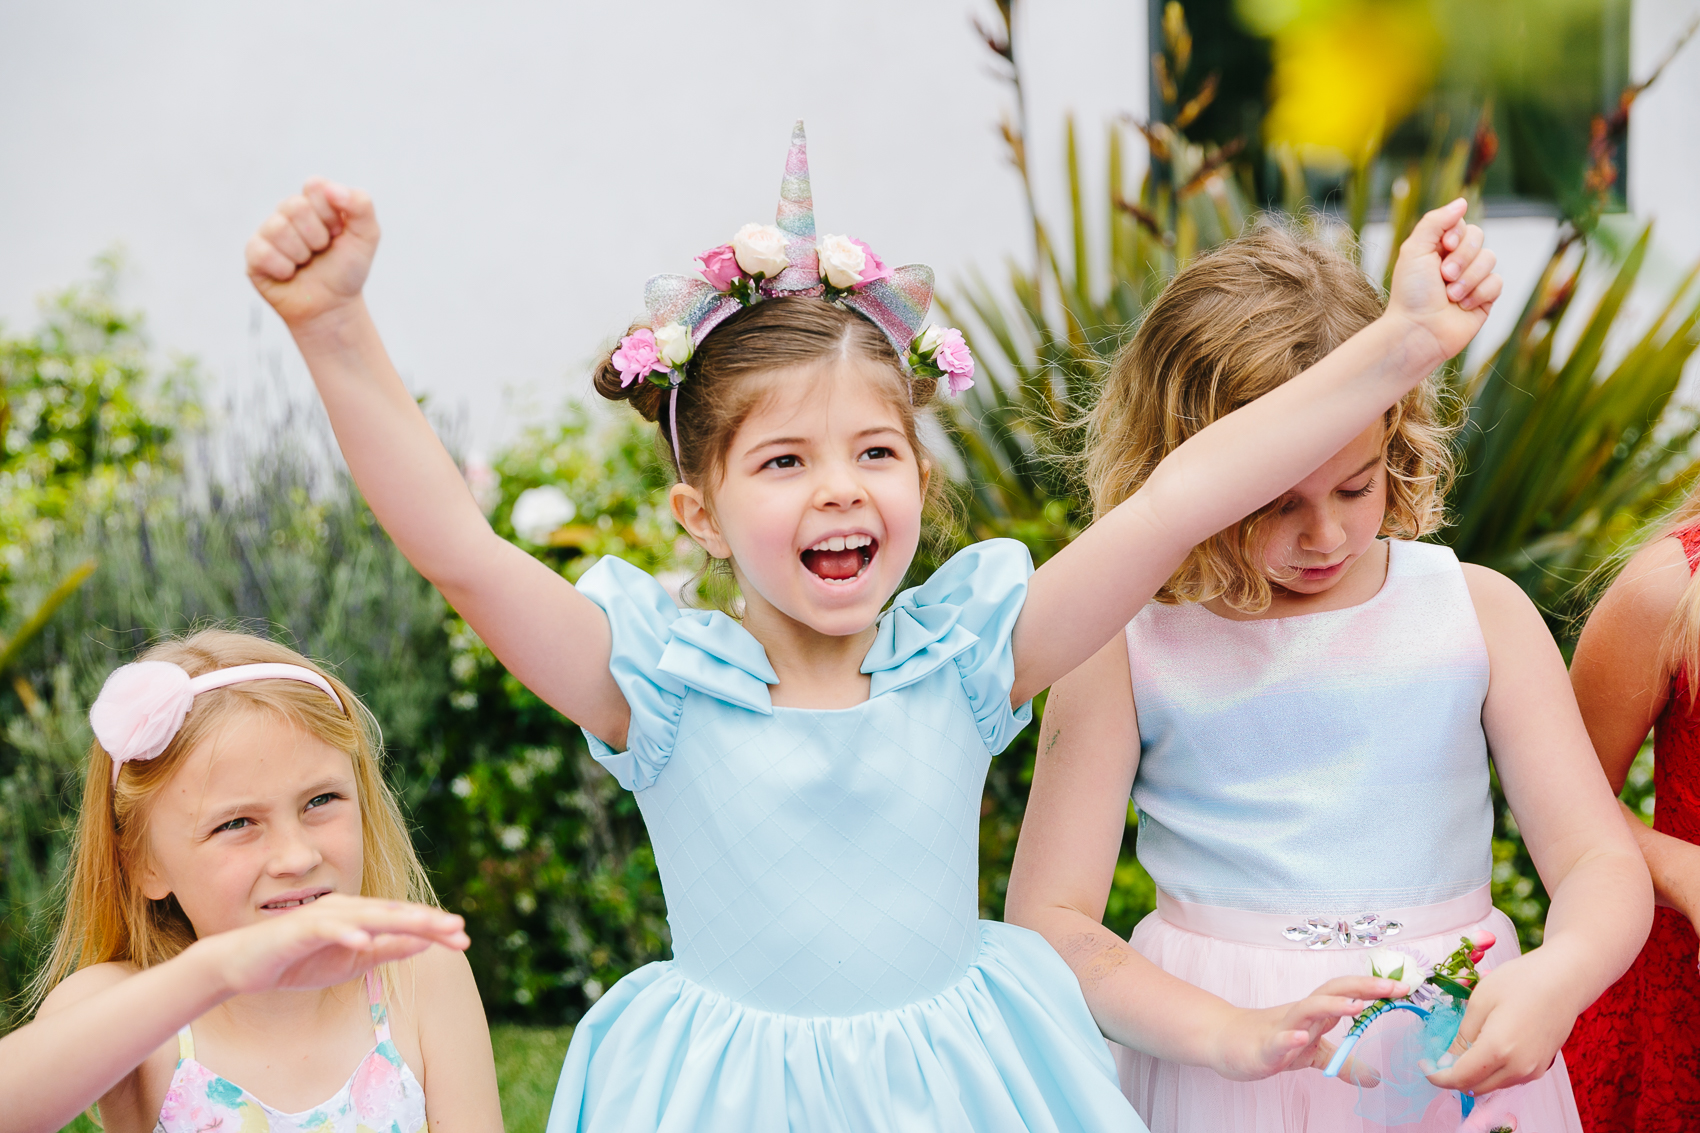 Los_Angeles_Family_Photographer_Luxury_Childrens_Party_Beverly_Hills_Unicorn_Birthday_Party-0801.jpg